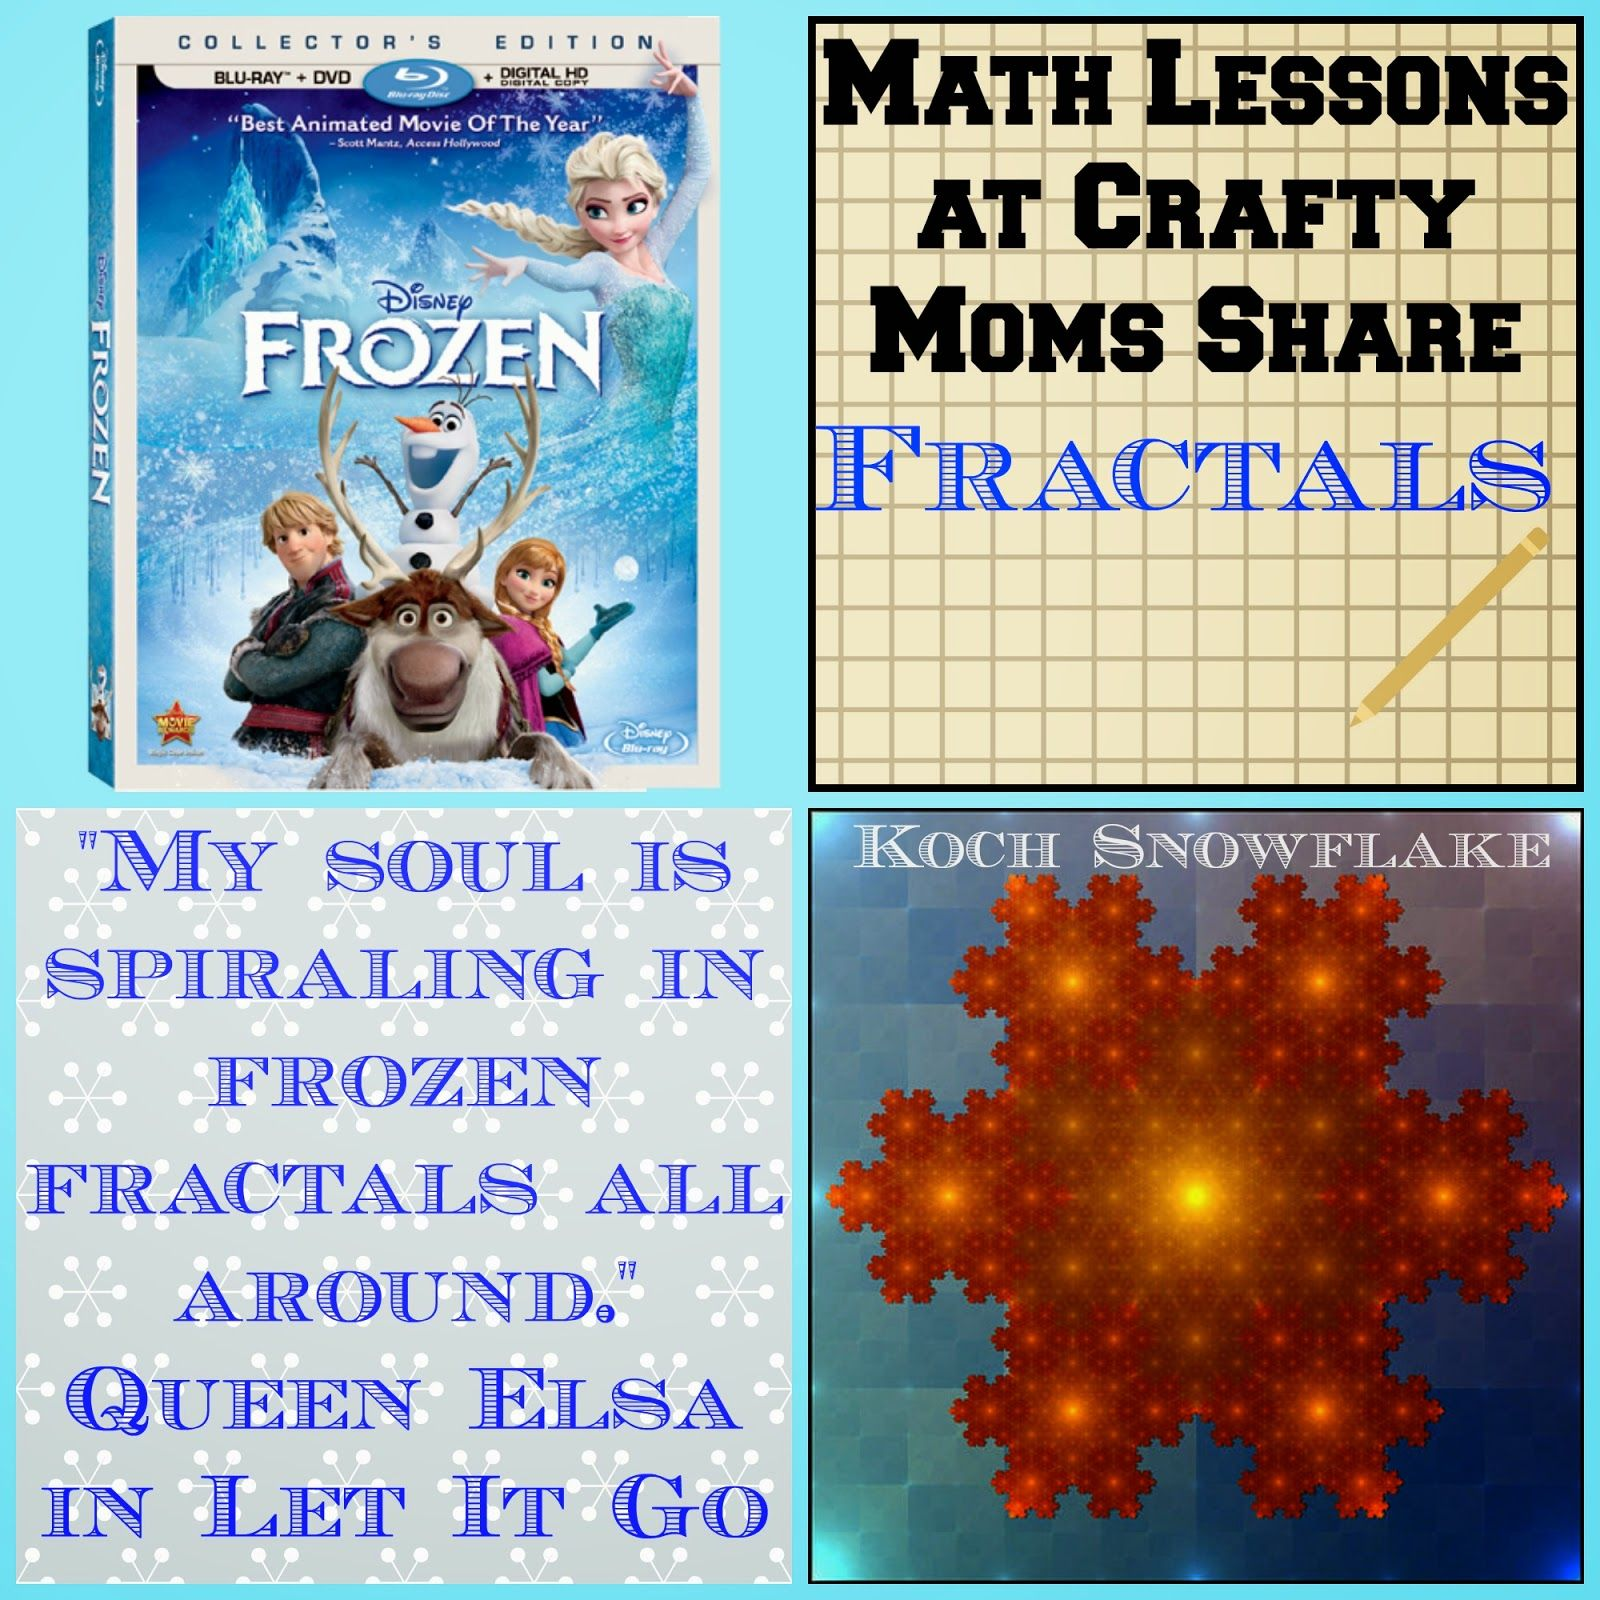 Crafty Moms Share: What Are Frozen Fractals? A Lesson on Fractals to ...